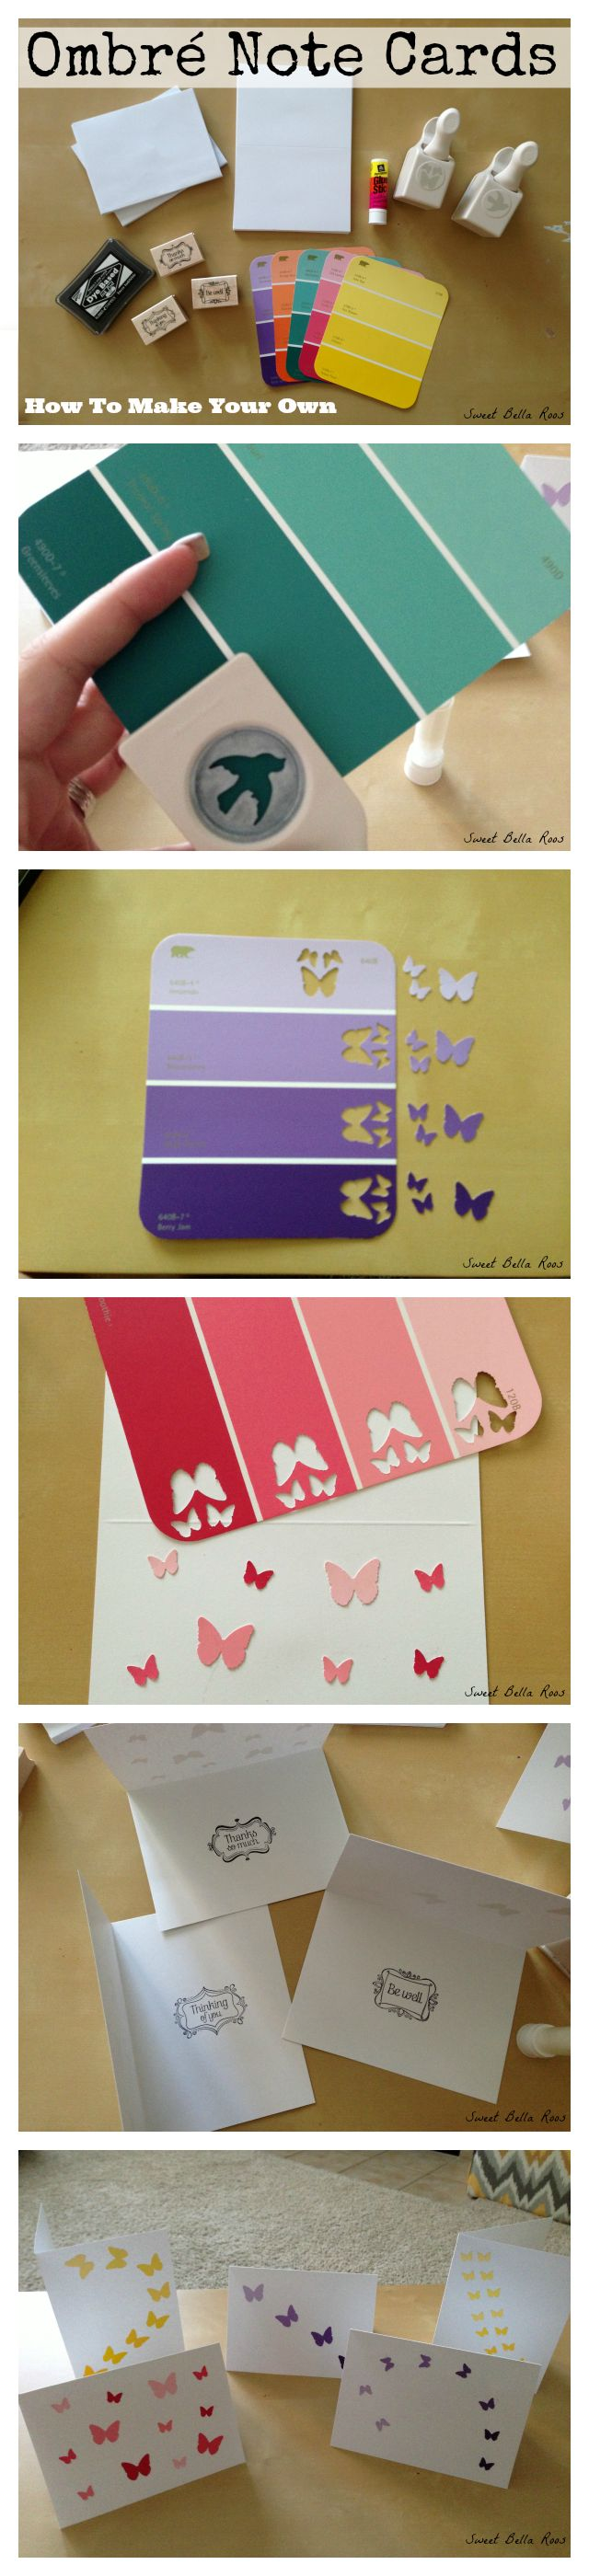 Ombre Note Cards with Paint Chips & Paper Punches - Paint Chip